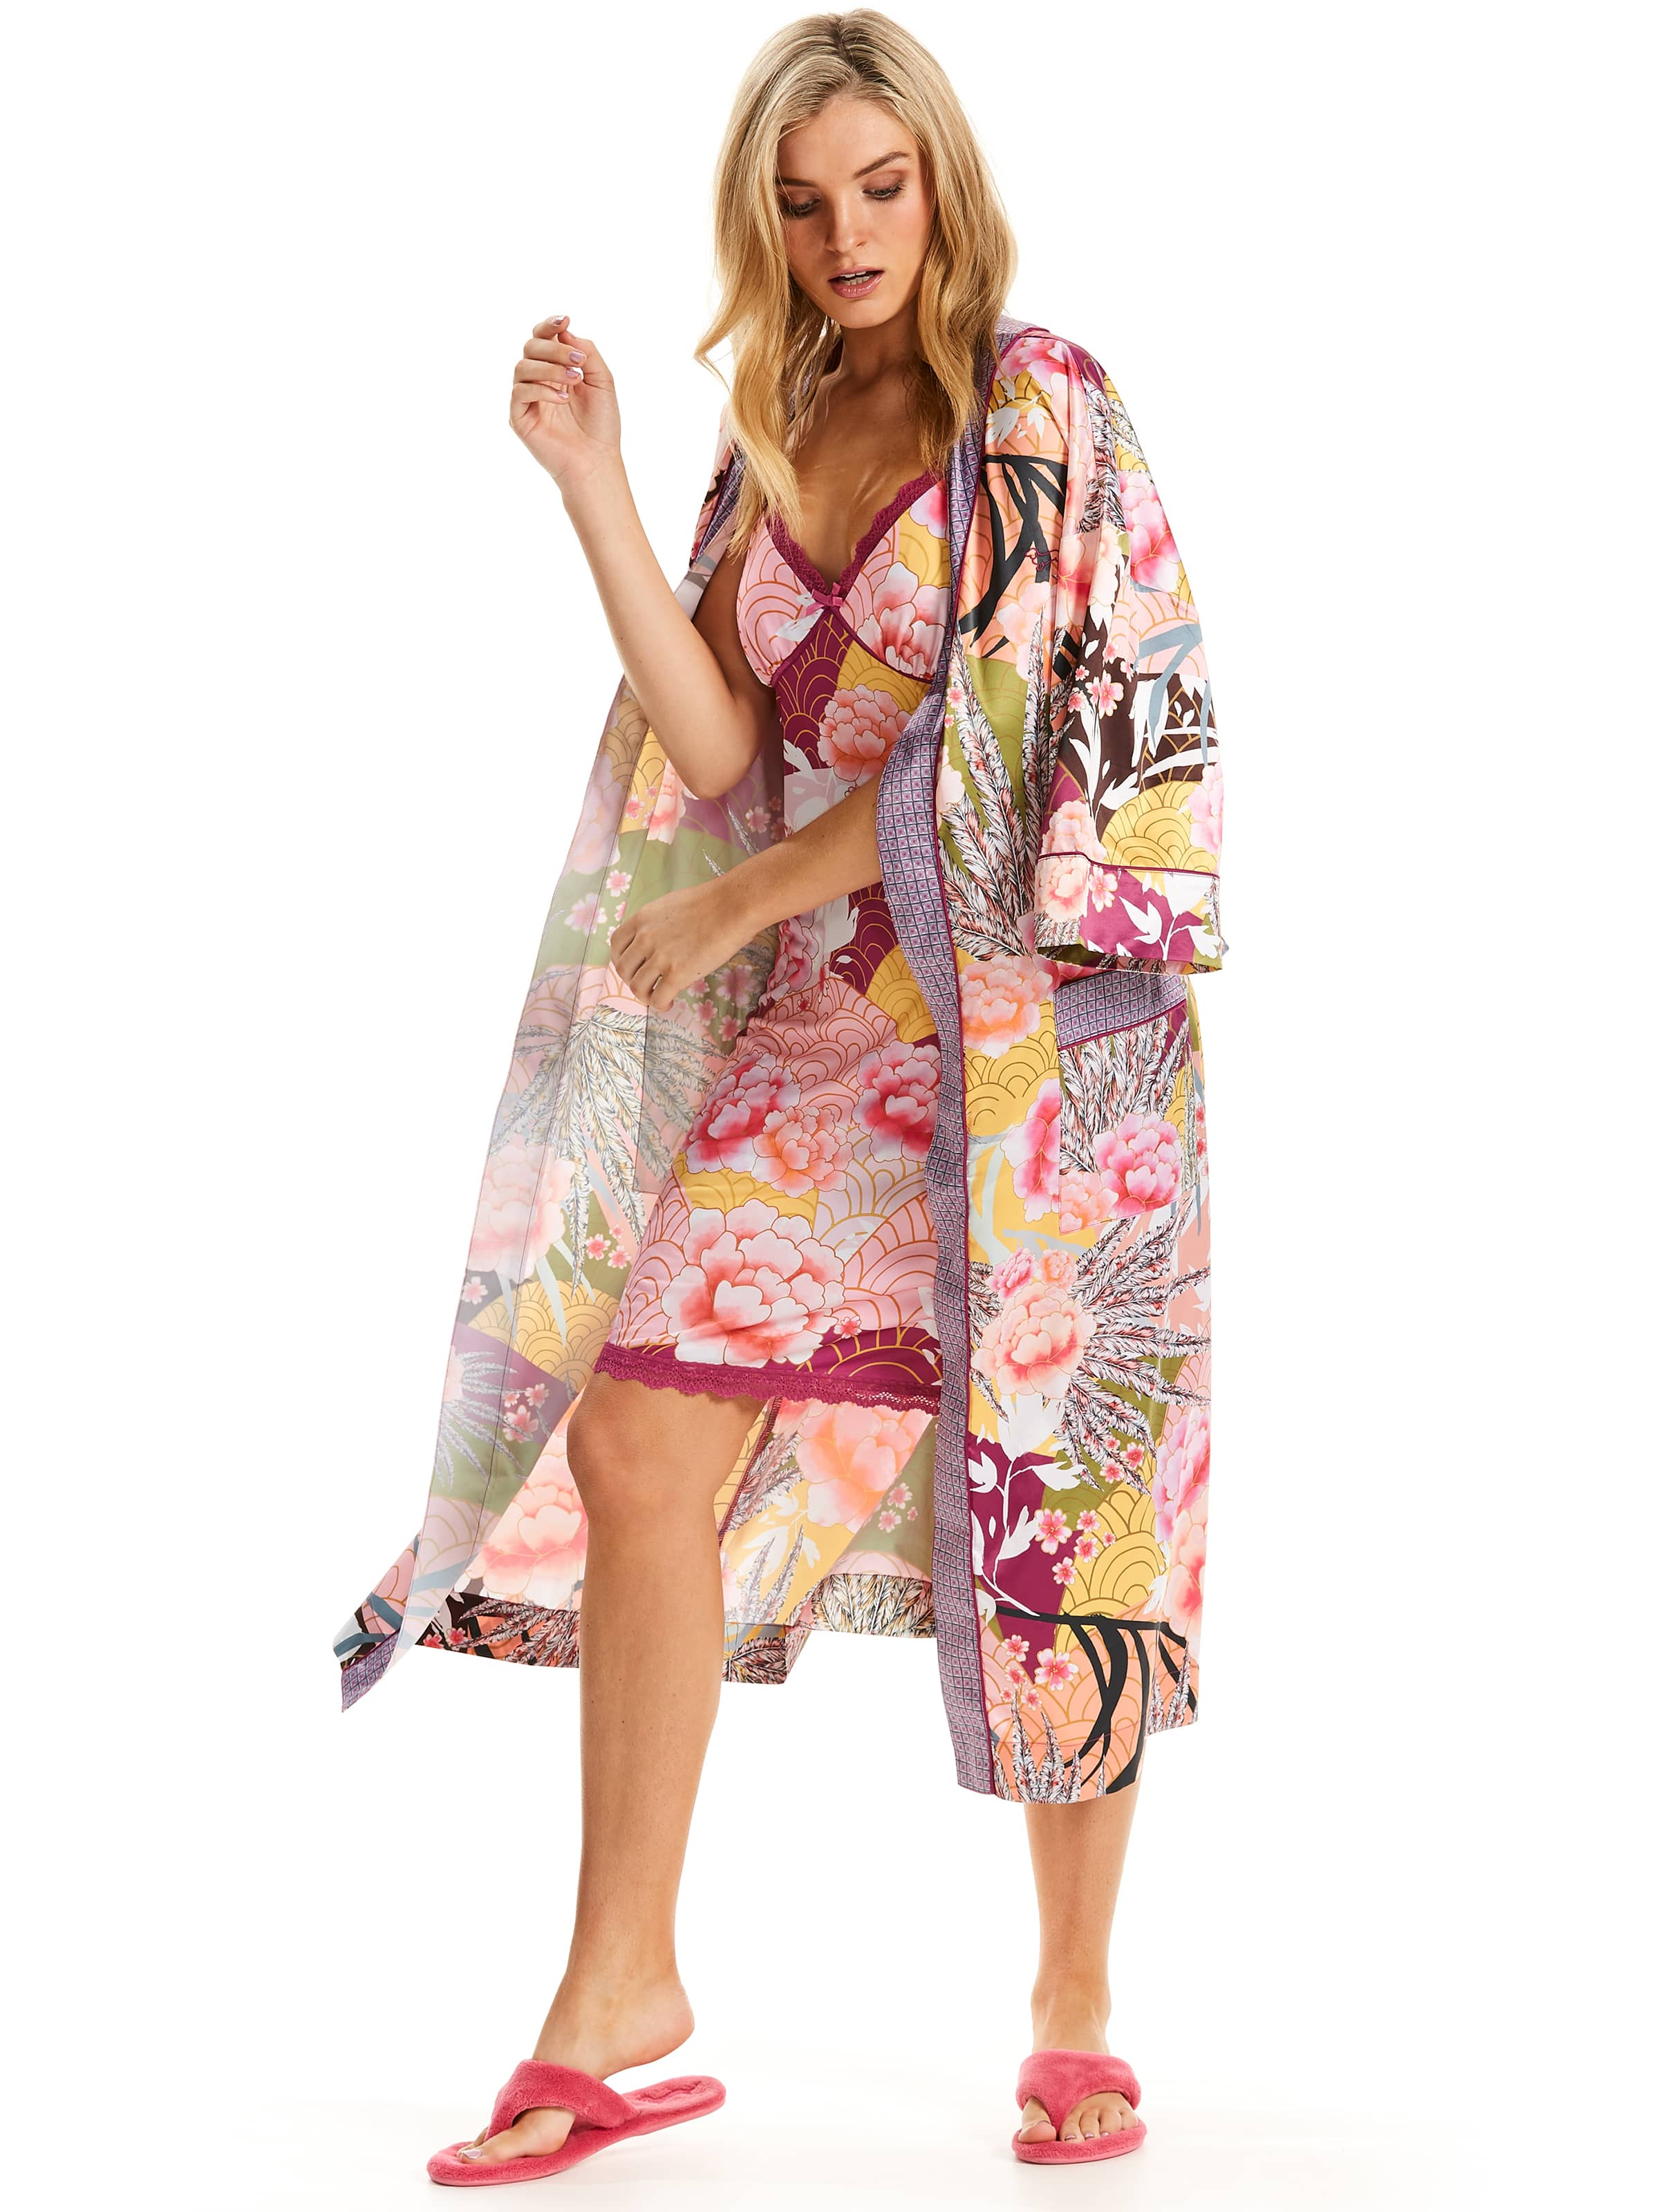 Blossom Kimono Gown - Peter Alexander Online